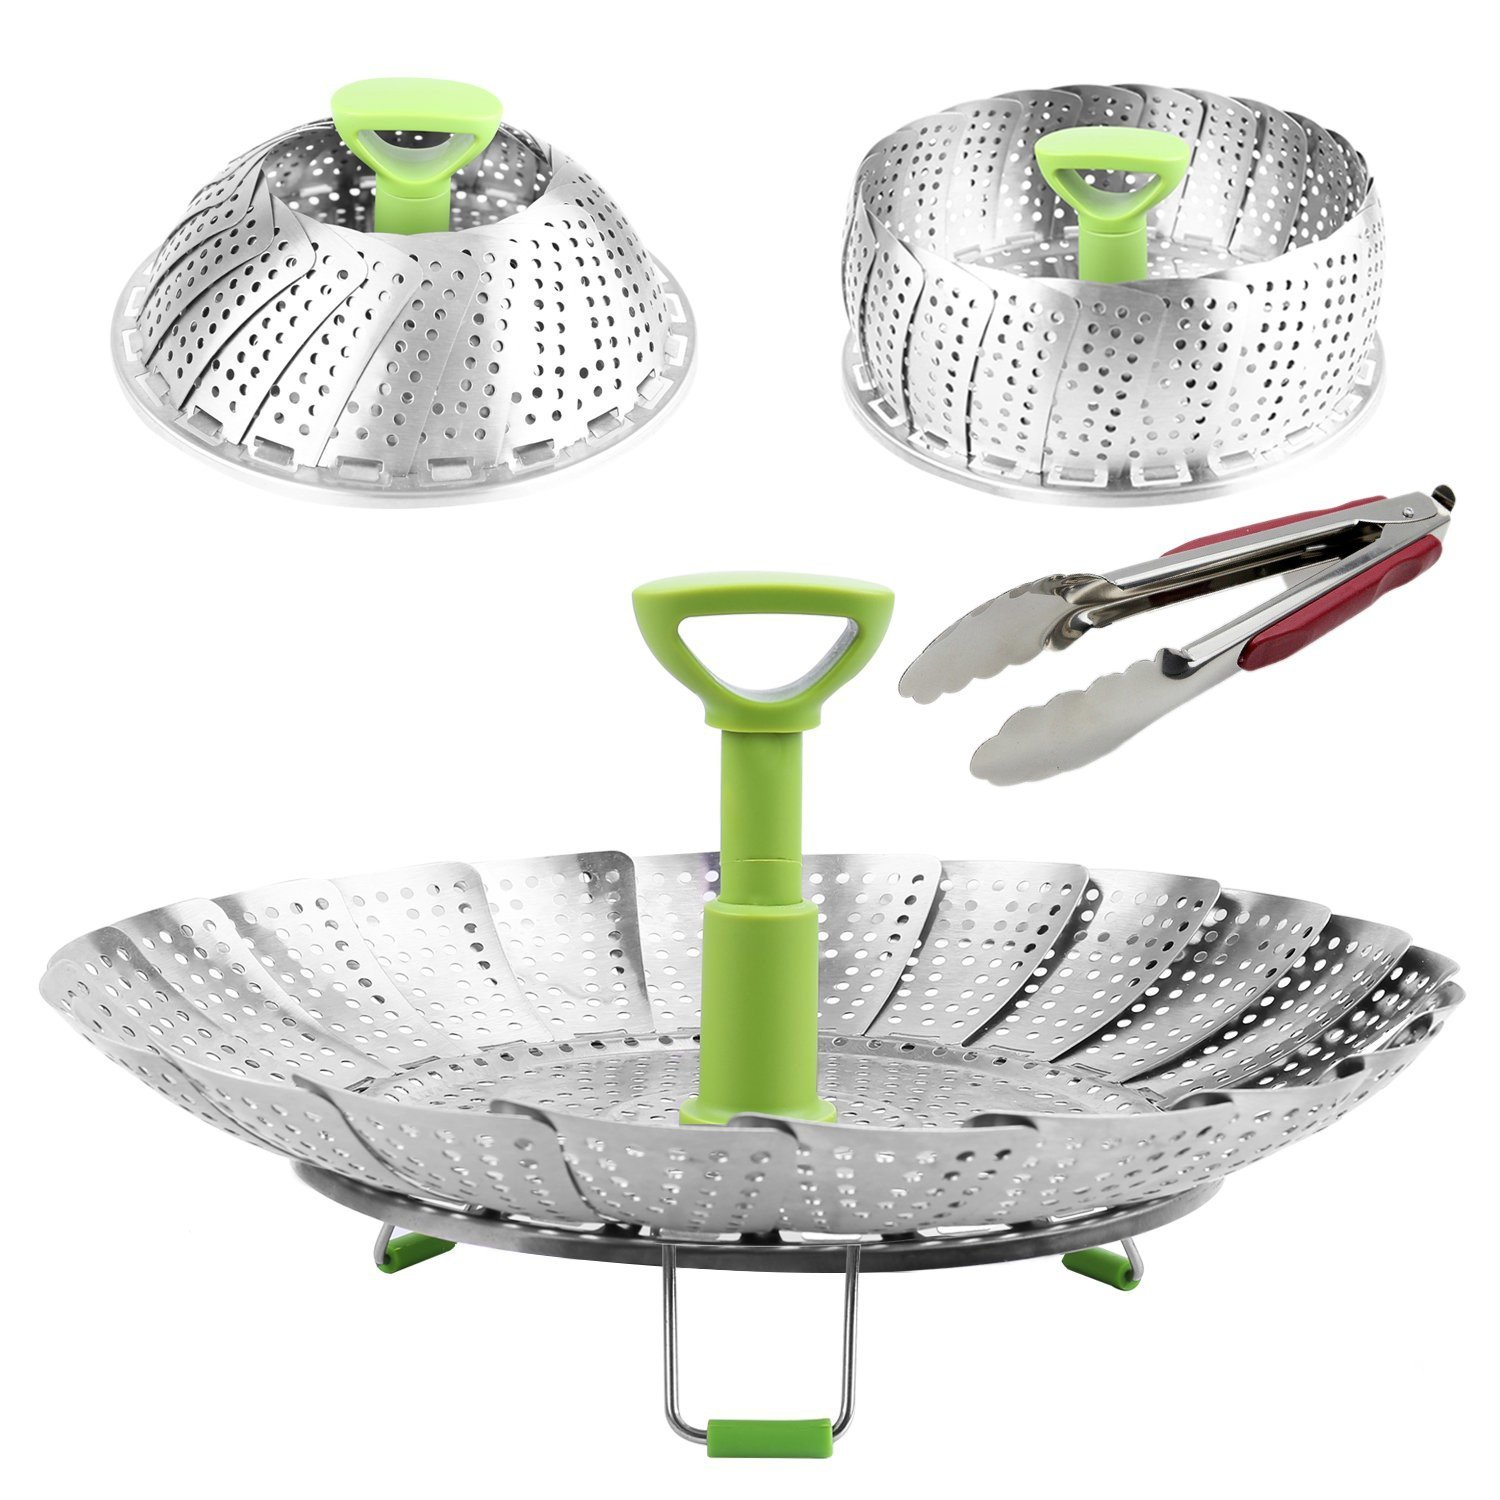 """Collapsible Food And Vegetable Steamer Basket Tray (7'' by 11'') With Kitchen Tong (9"""")- Good For Steaming Veggies, Seafood, Baby Food- Fits Many Pots, Pans, And Pressure Cookers"""